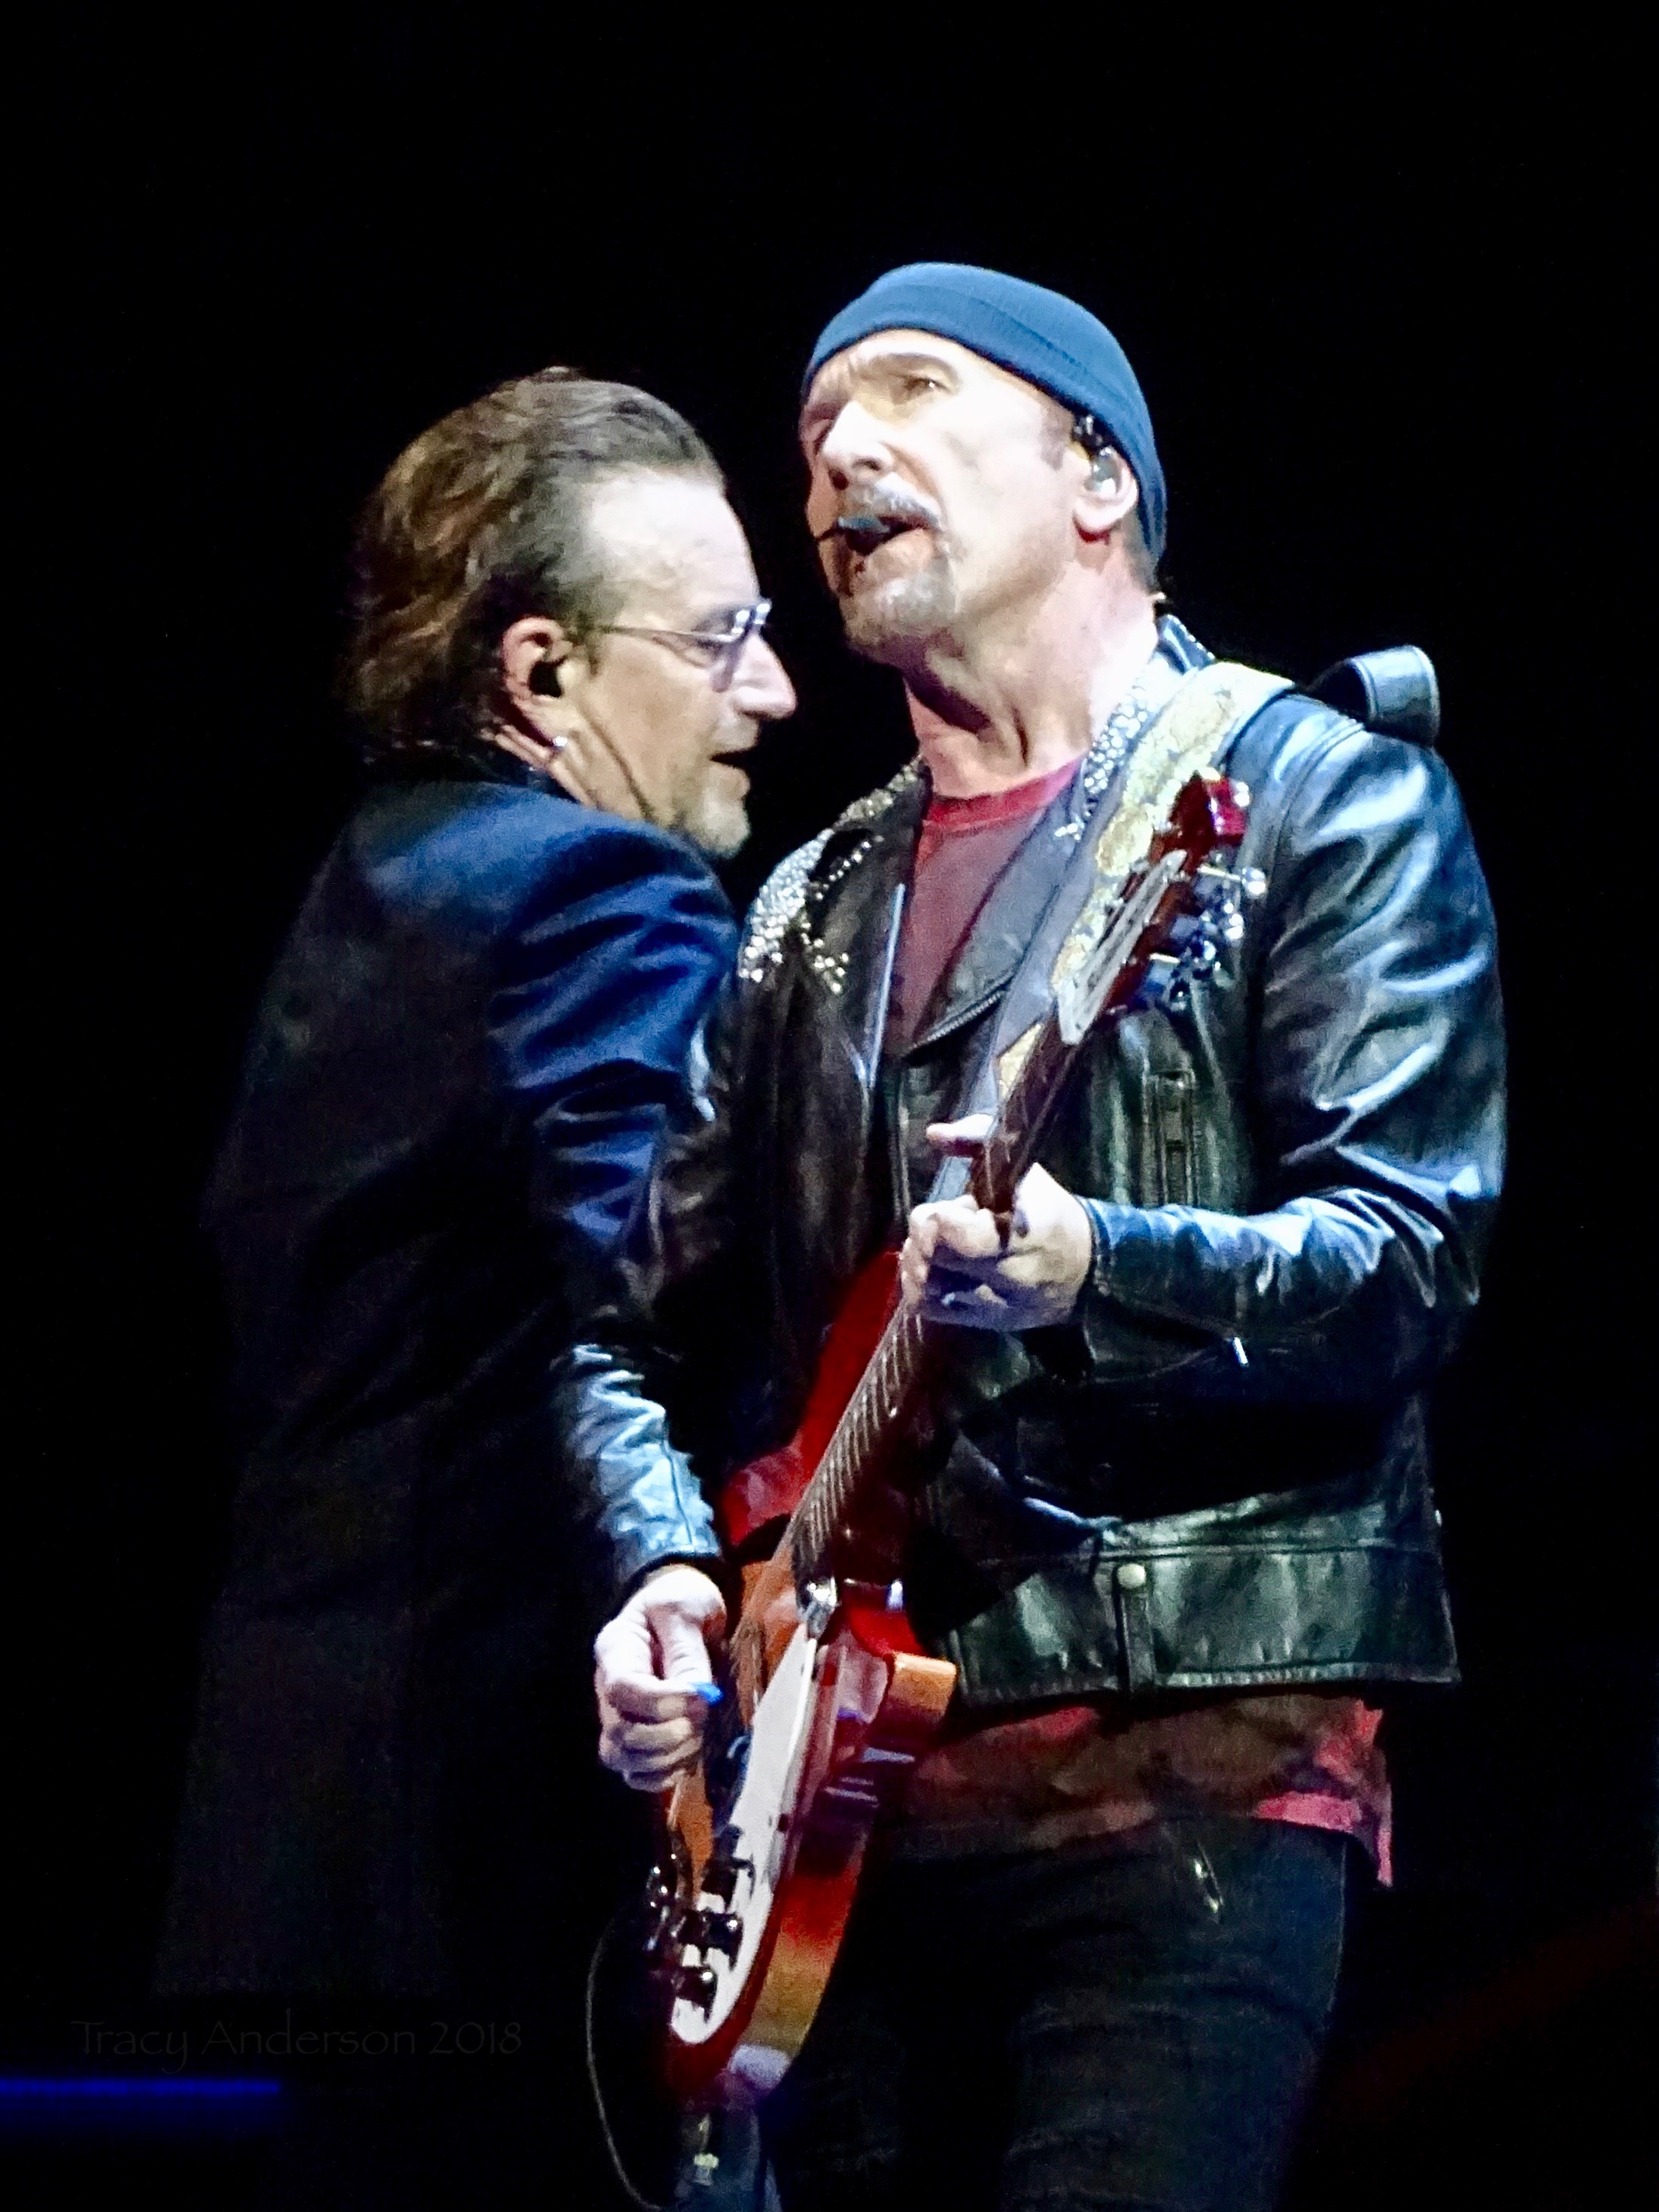 Bono Edge Catwalk Close UpU2 Dublin 1 3Arena Nov 5 2018